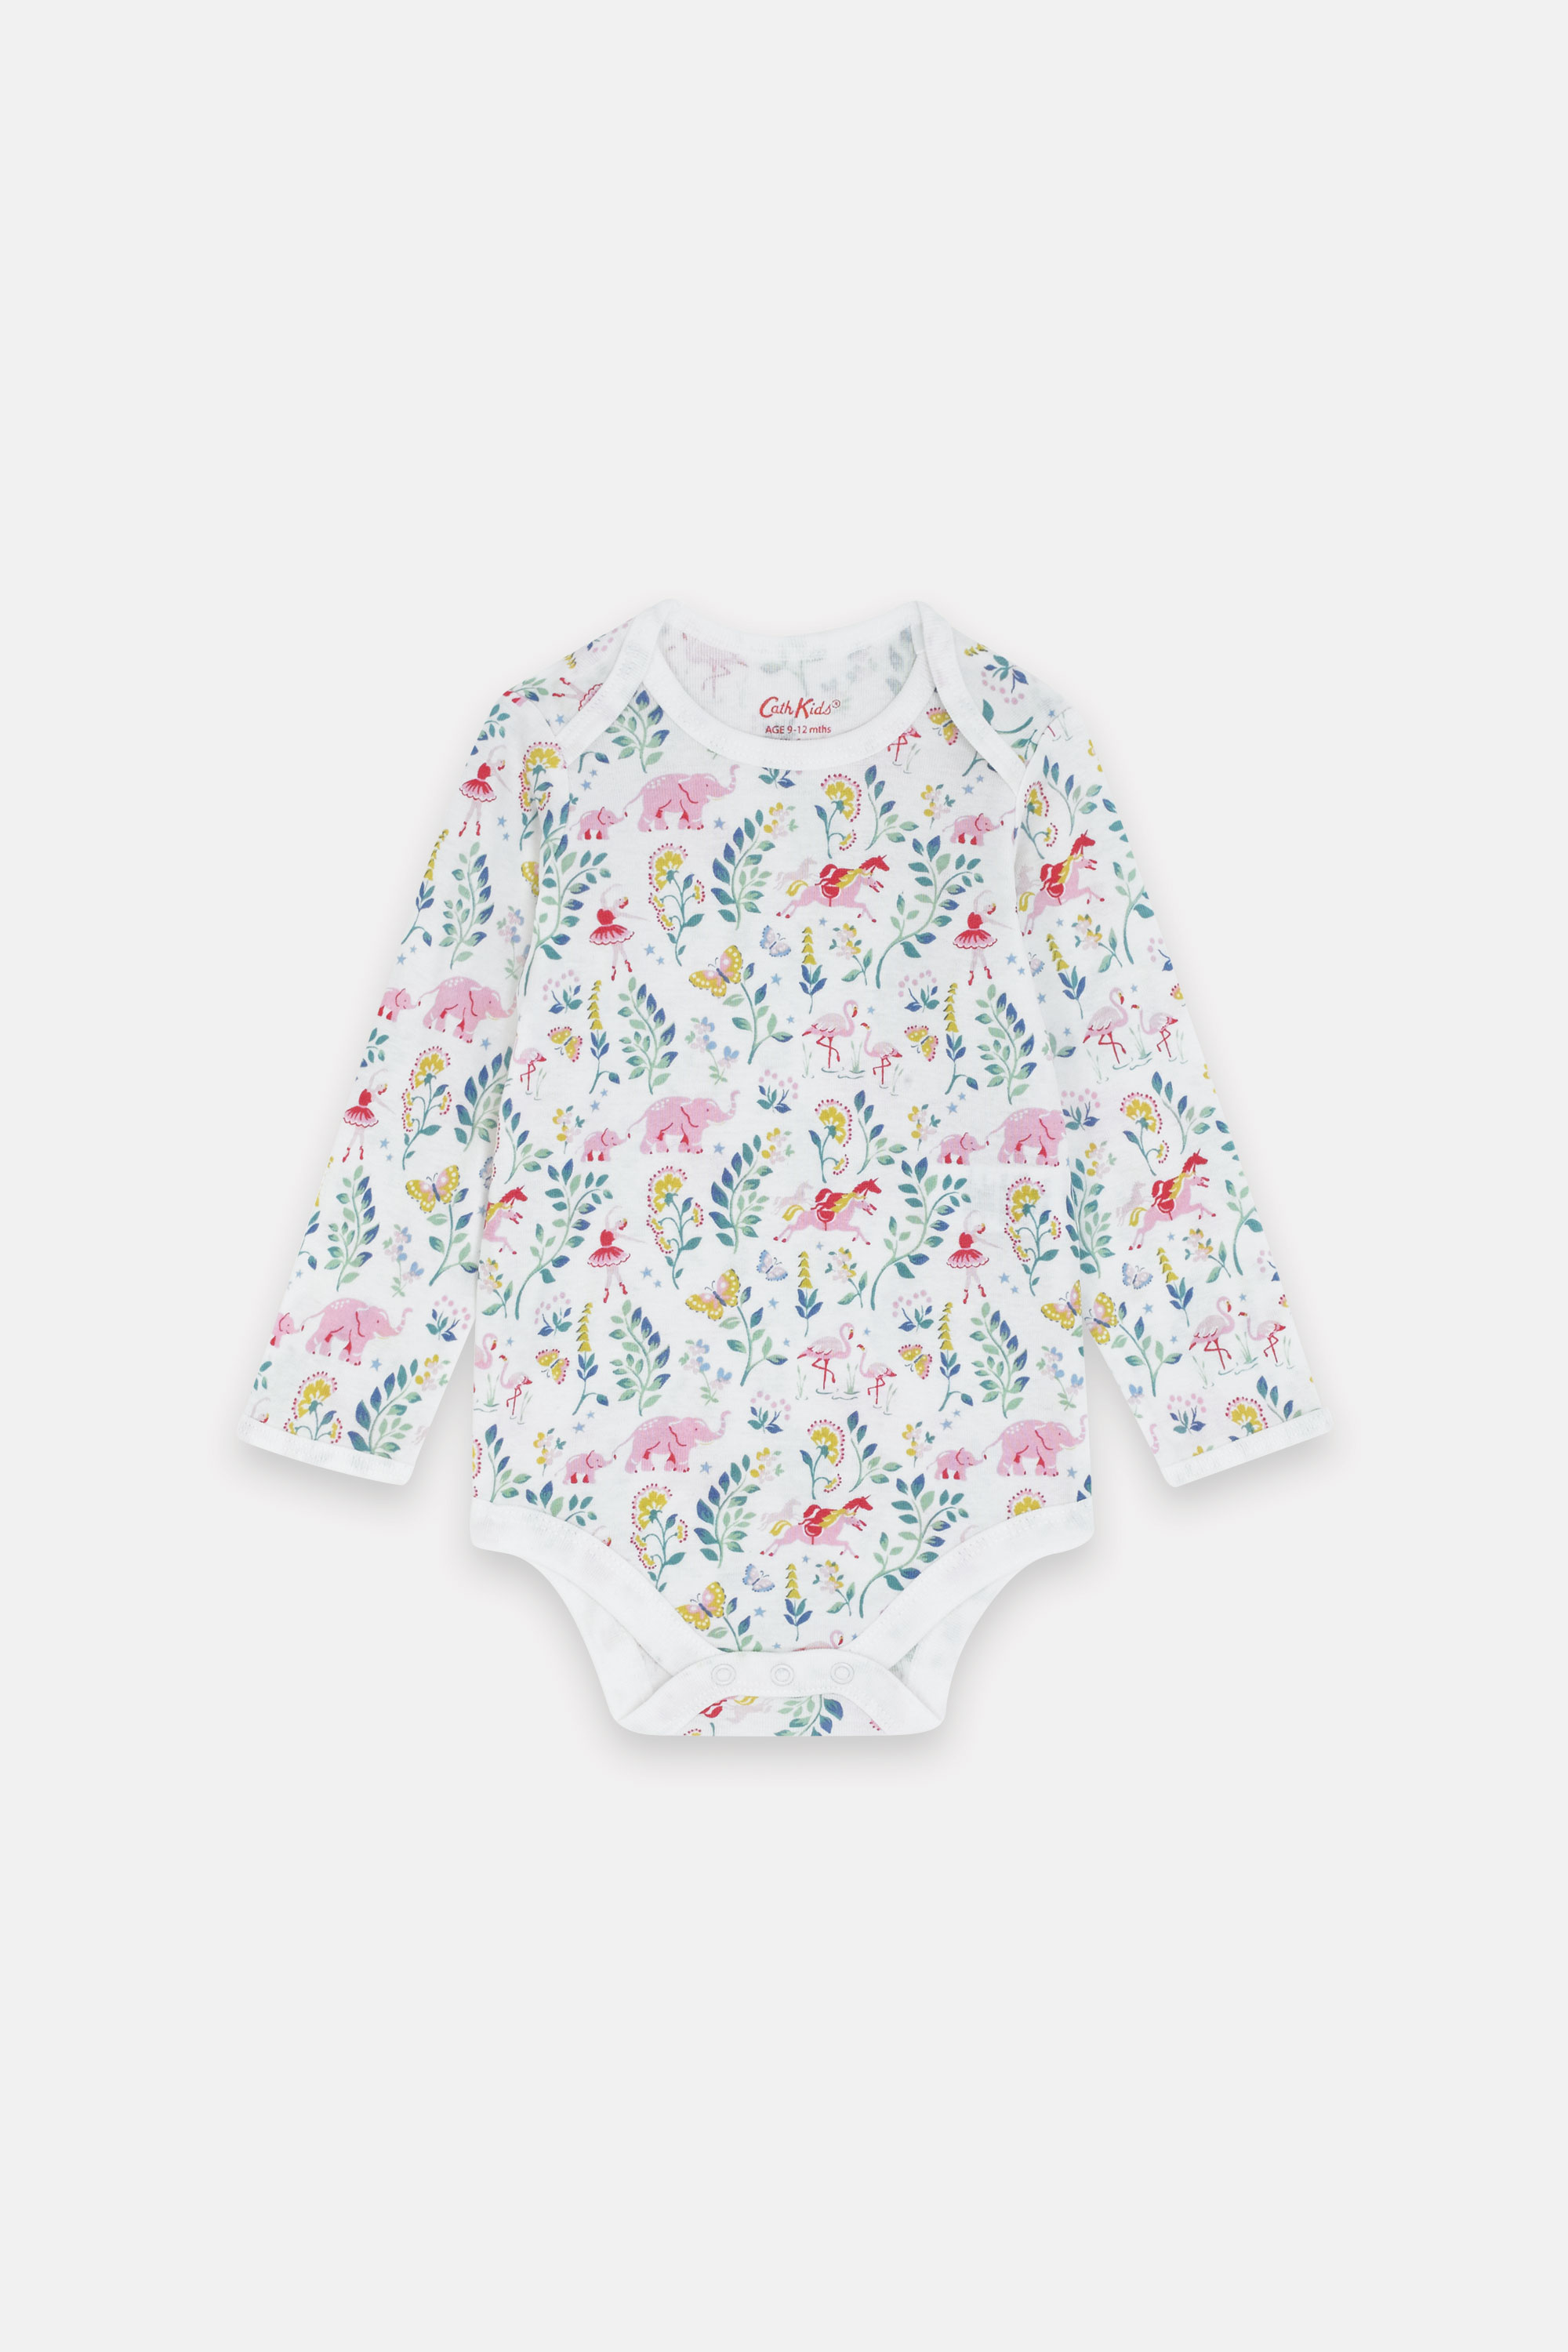 Cath Kidston Fantasy Forest Bodysuit in Oyster Shell, 3-6 Mo